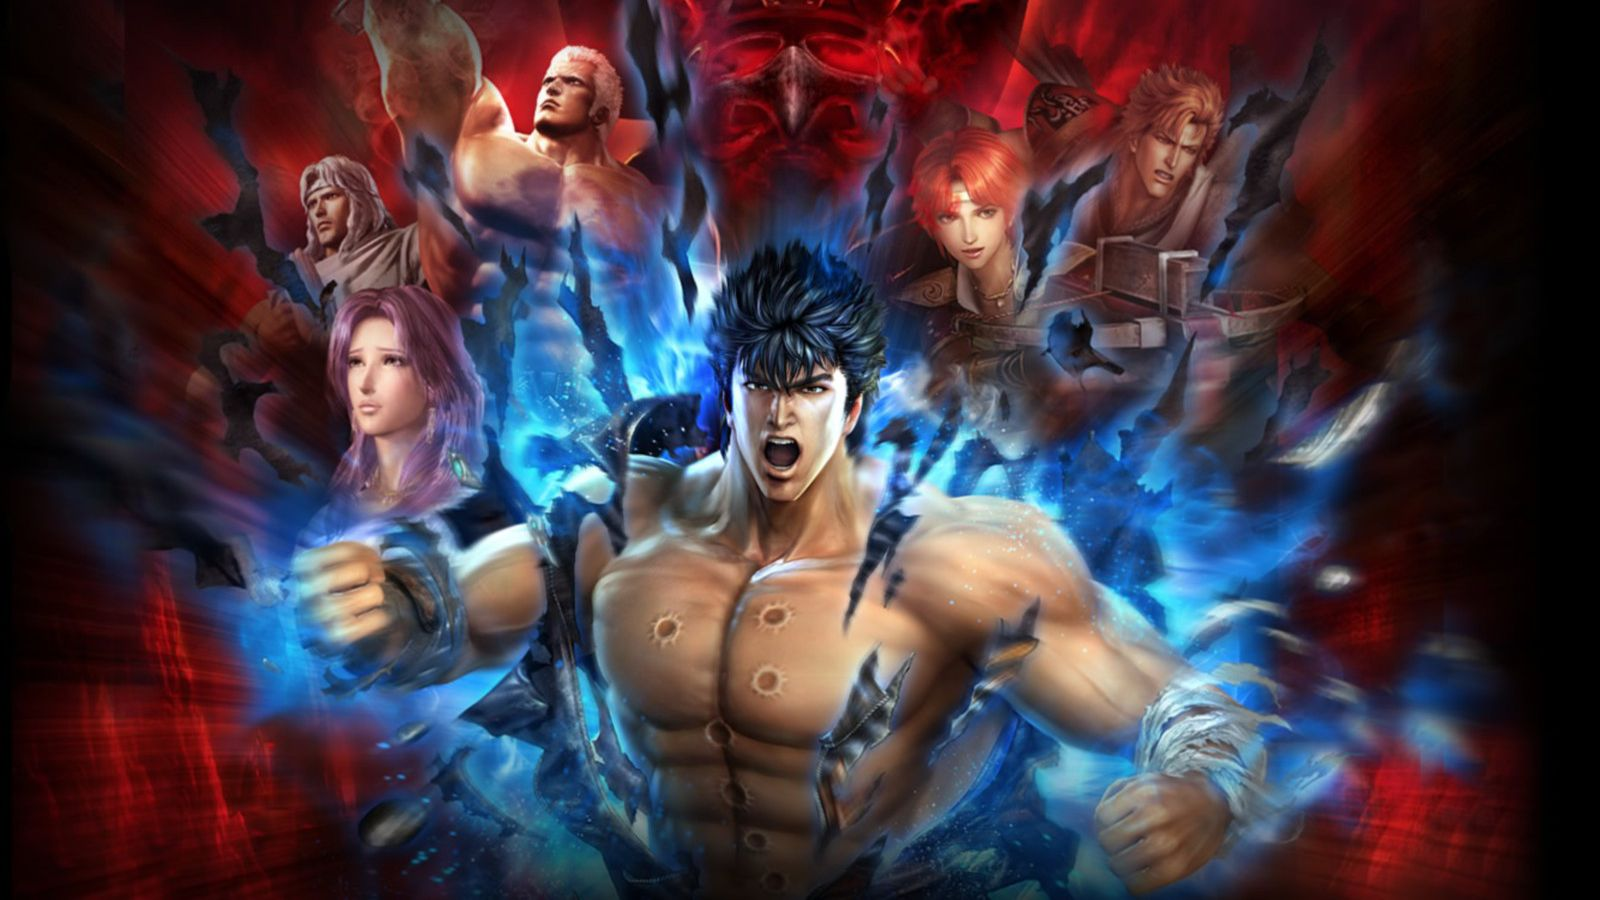 Free Download Fist Of The North Star Kens Rage 2 Review Same Old